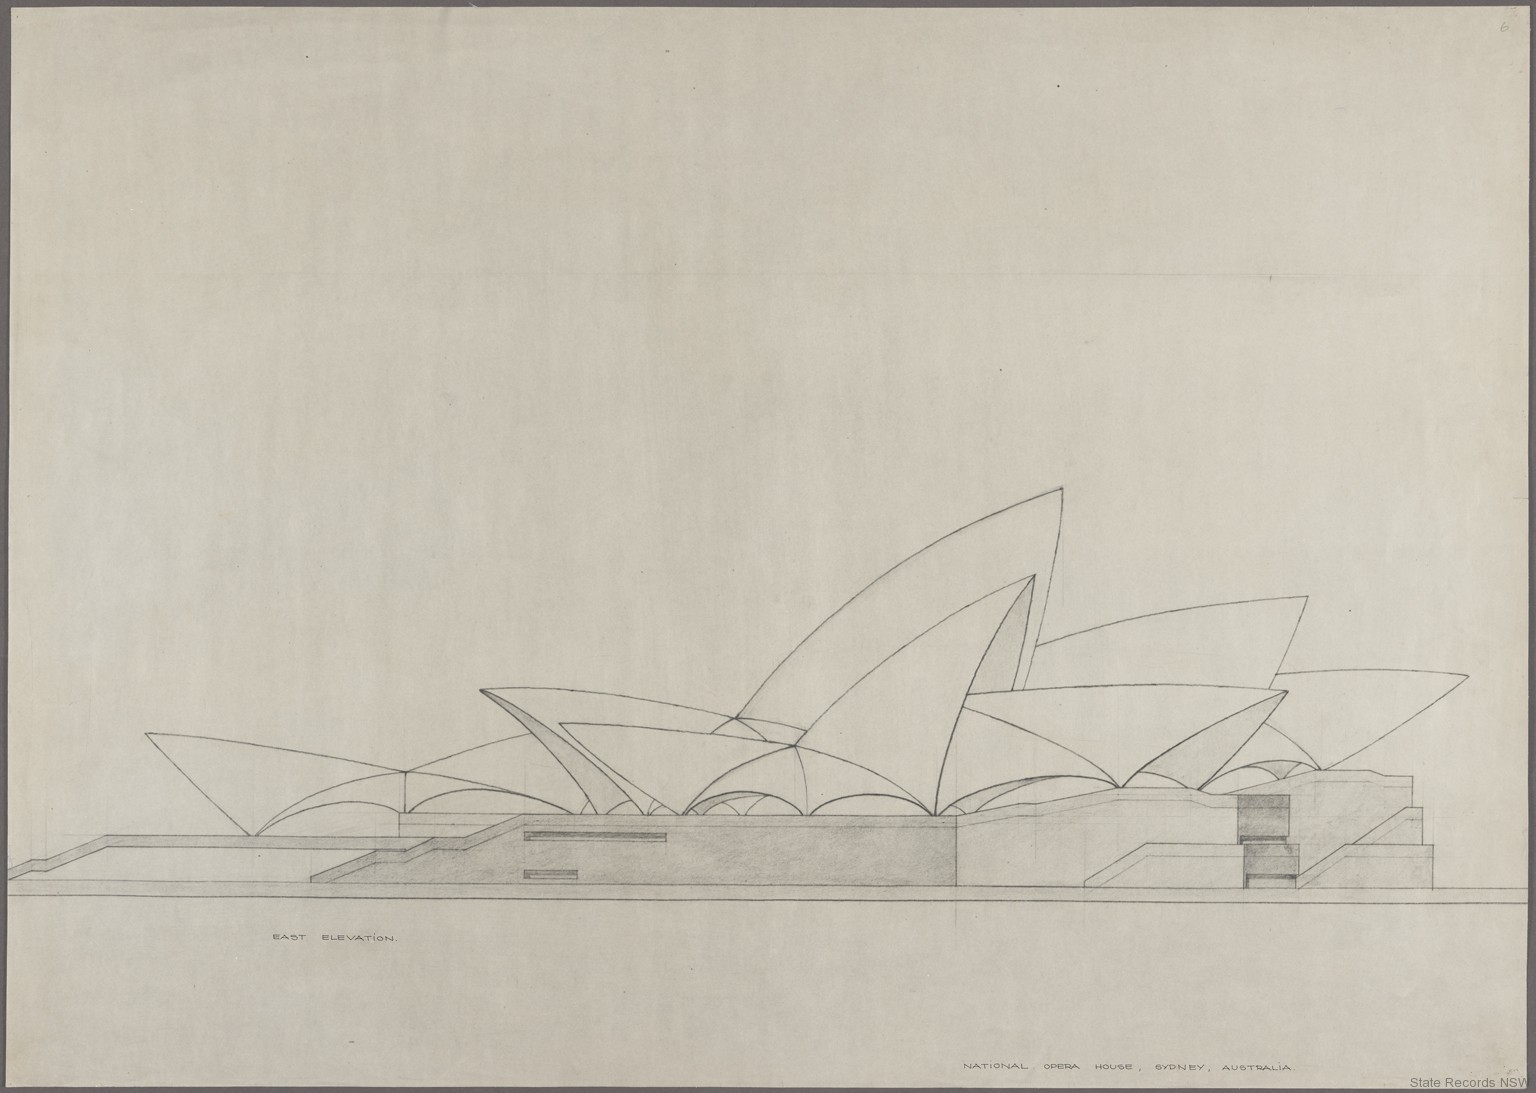 Sydney Opera House Utzon Drawings State Records Nsw